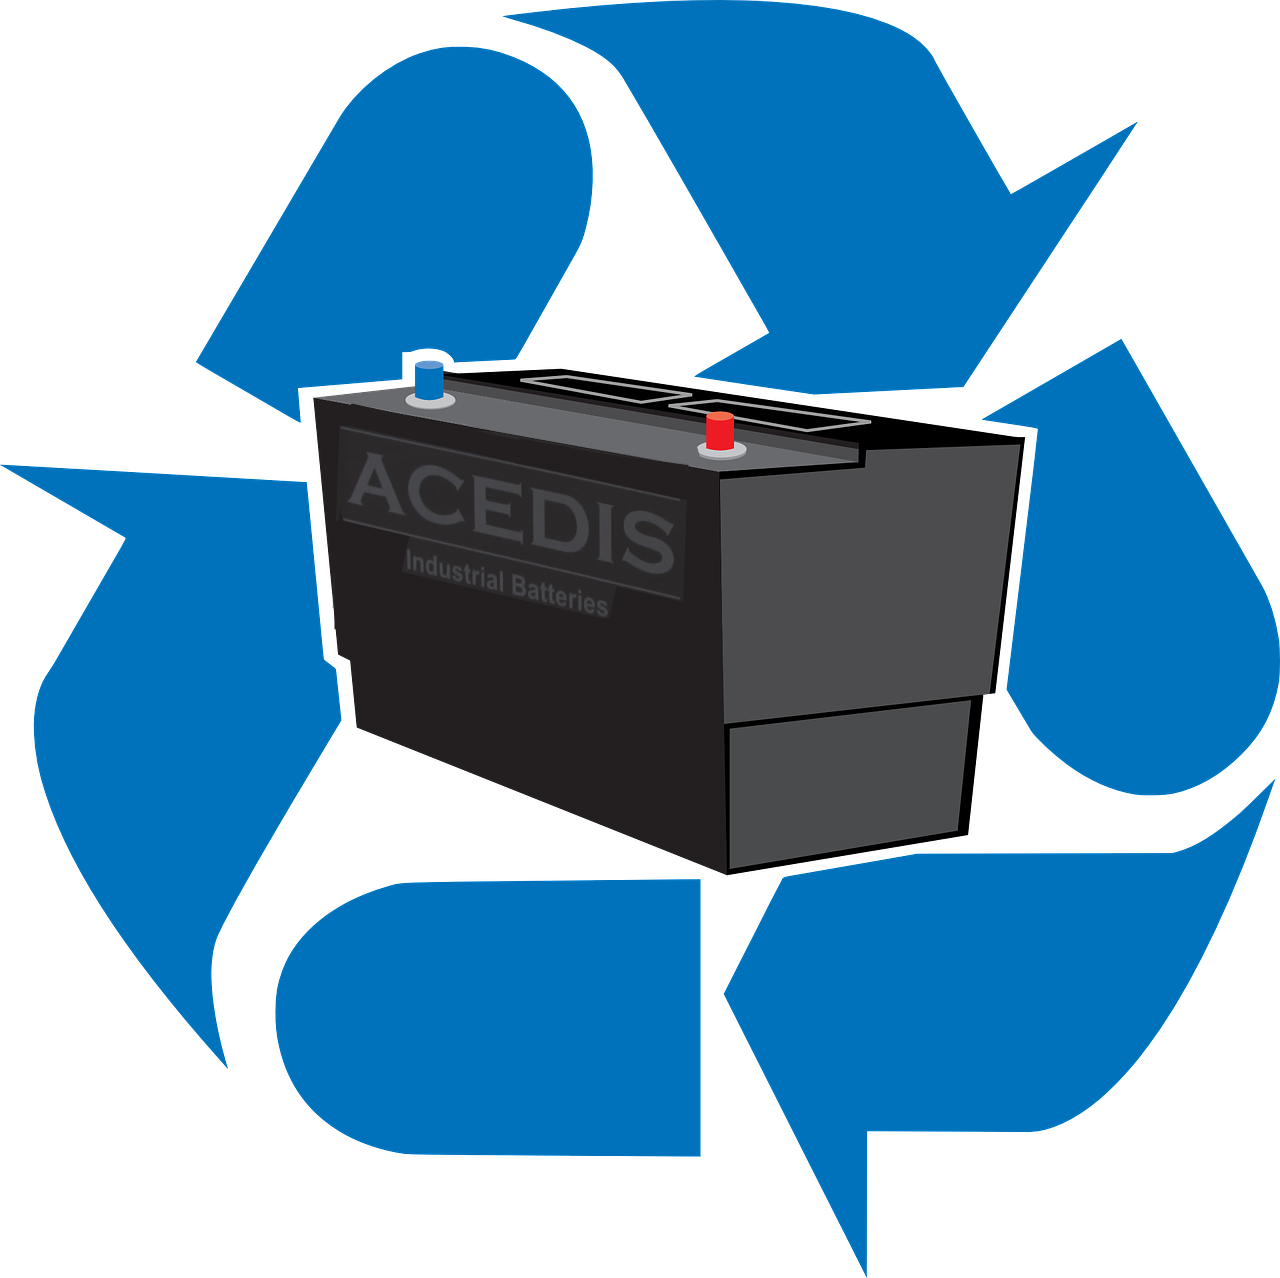 acedis' recycling industrial batteries environmental policy